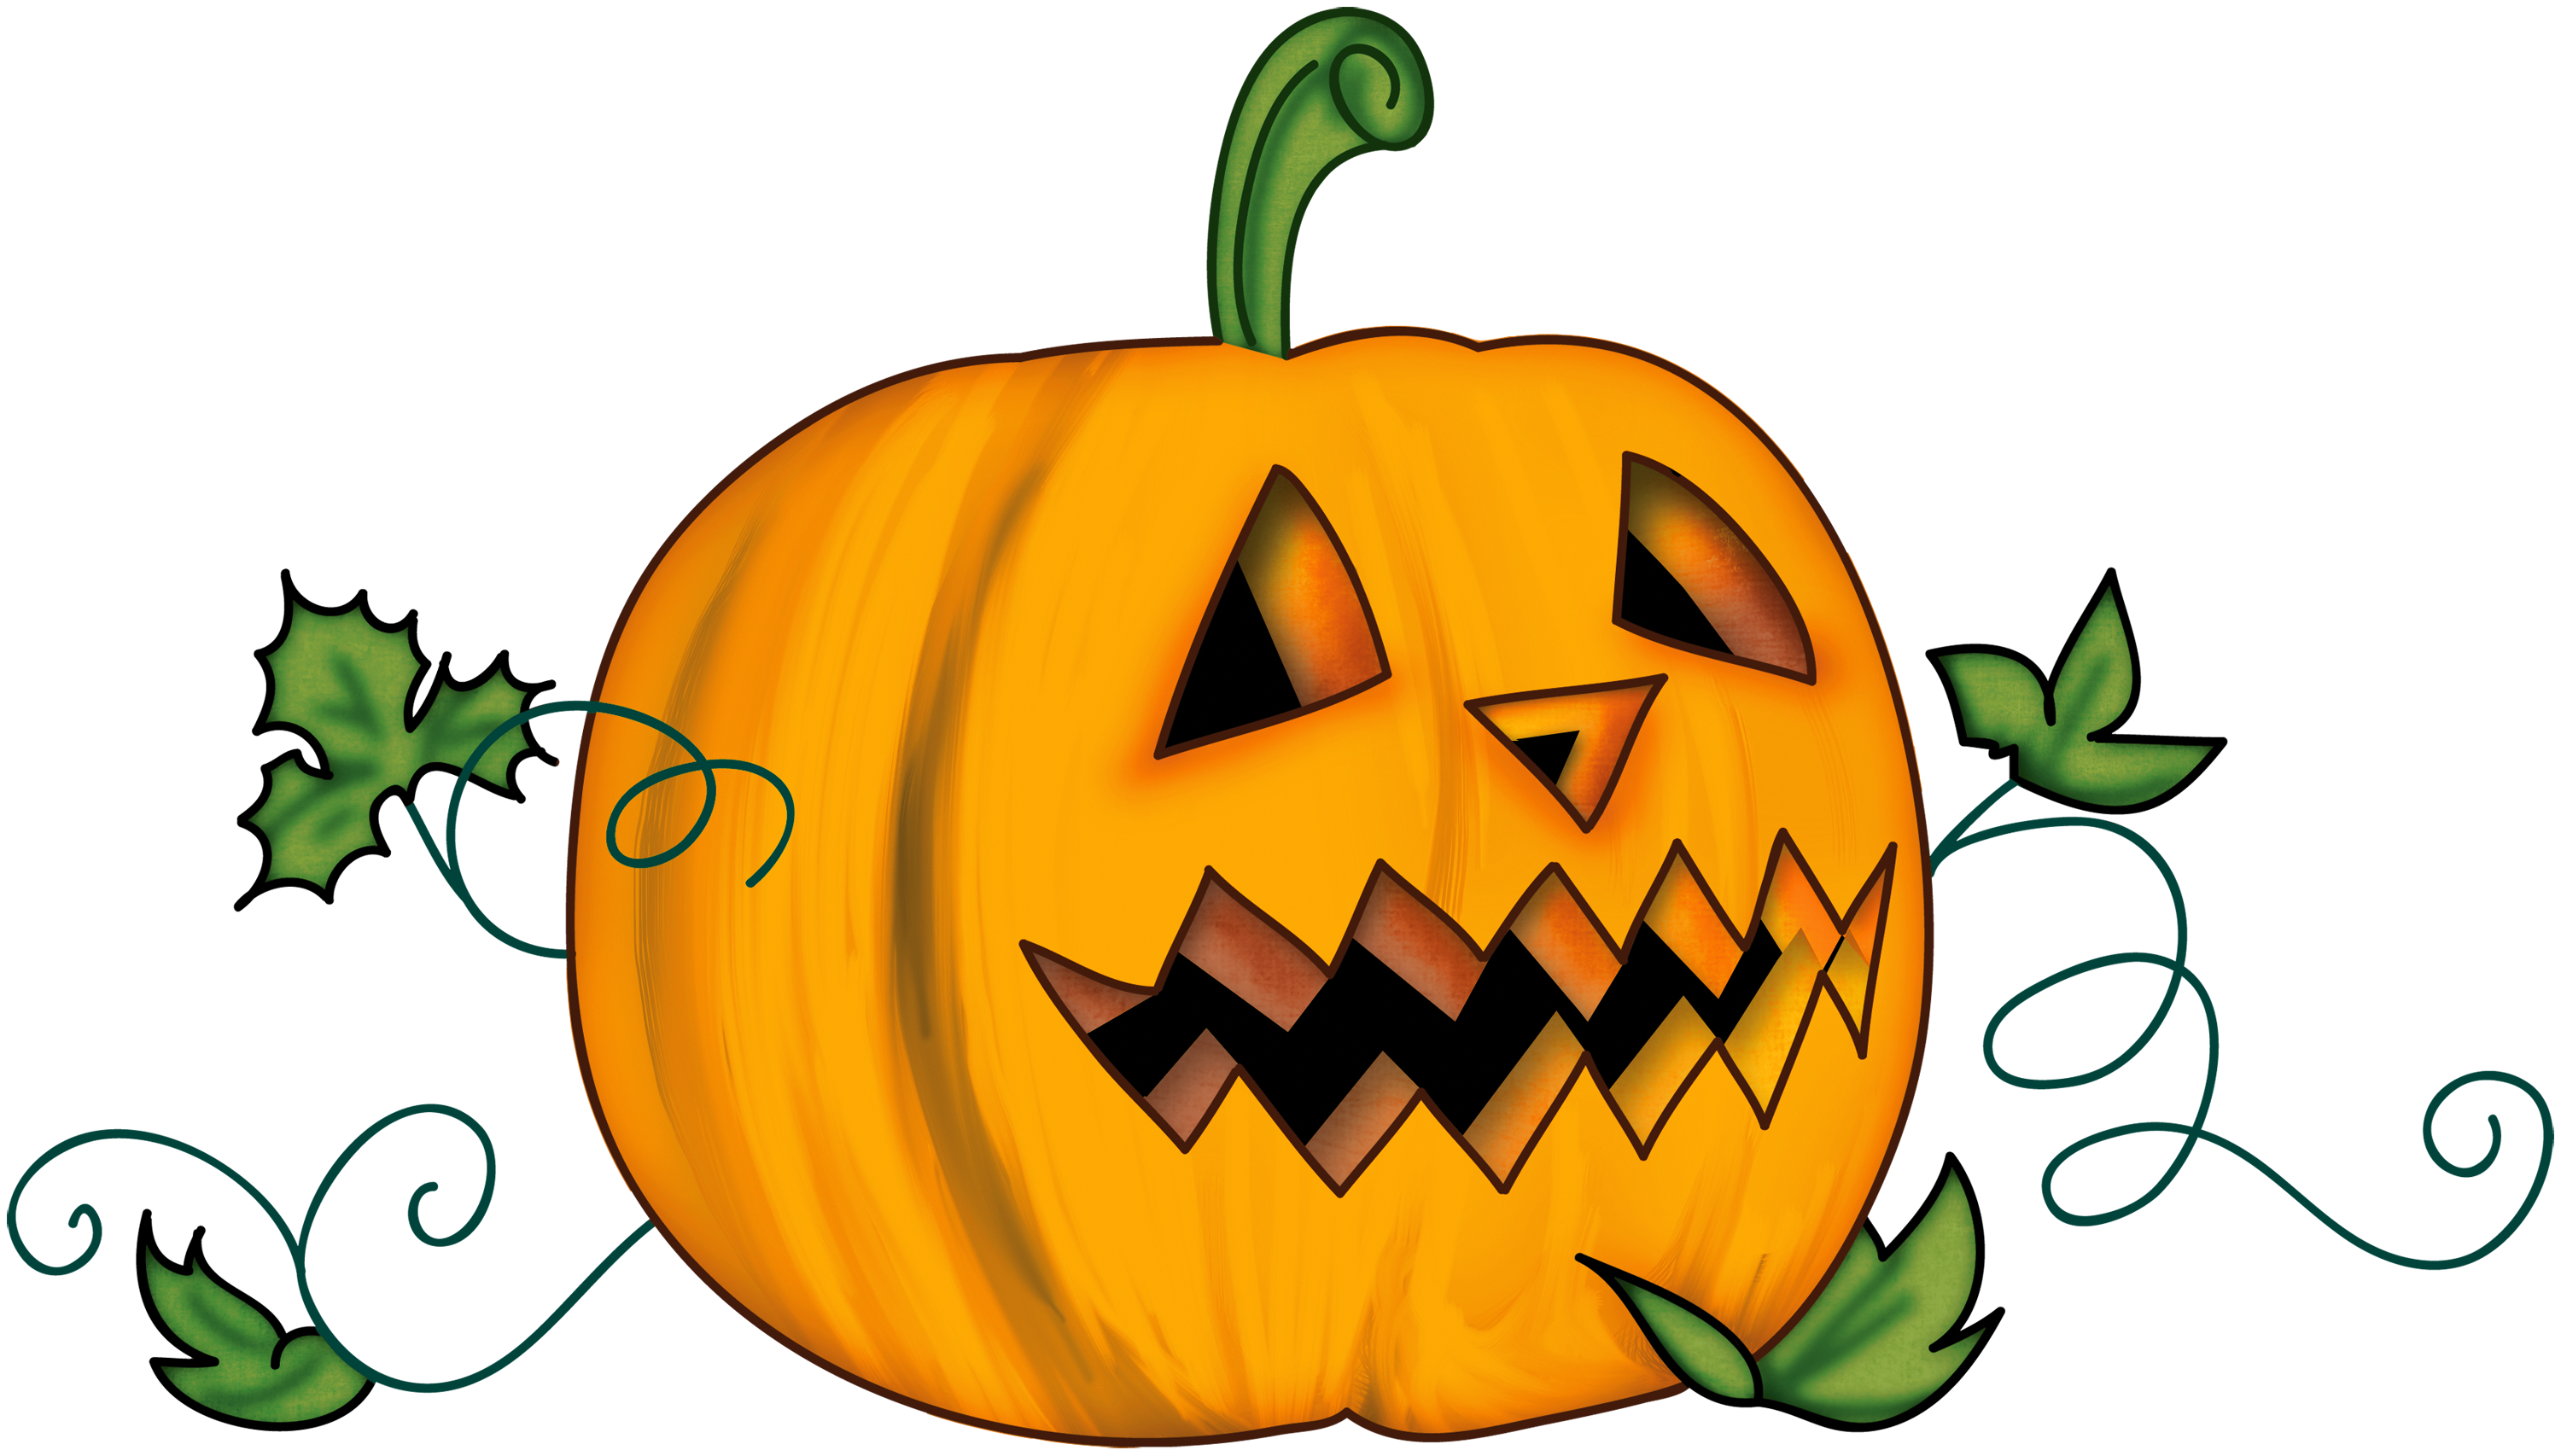 Transparent Halloween Clipart Halloween -Transparent Halloween Clipart Halloween Pumpkin Clip Art-18